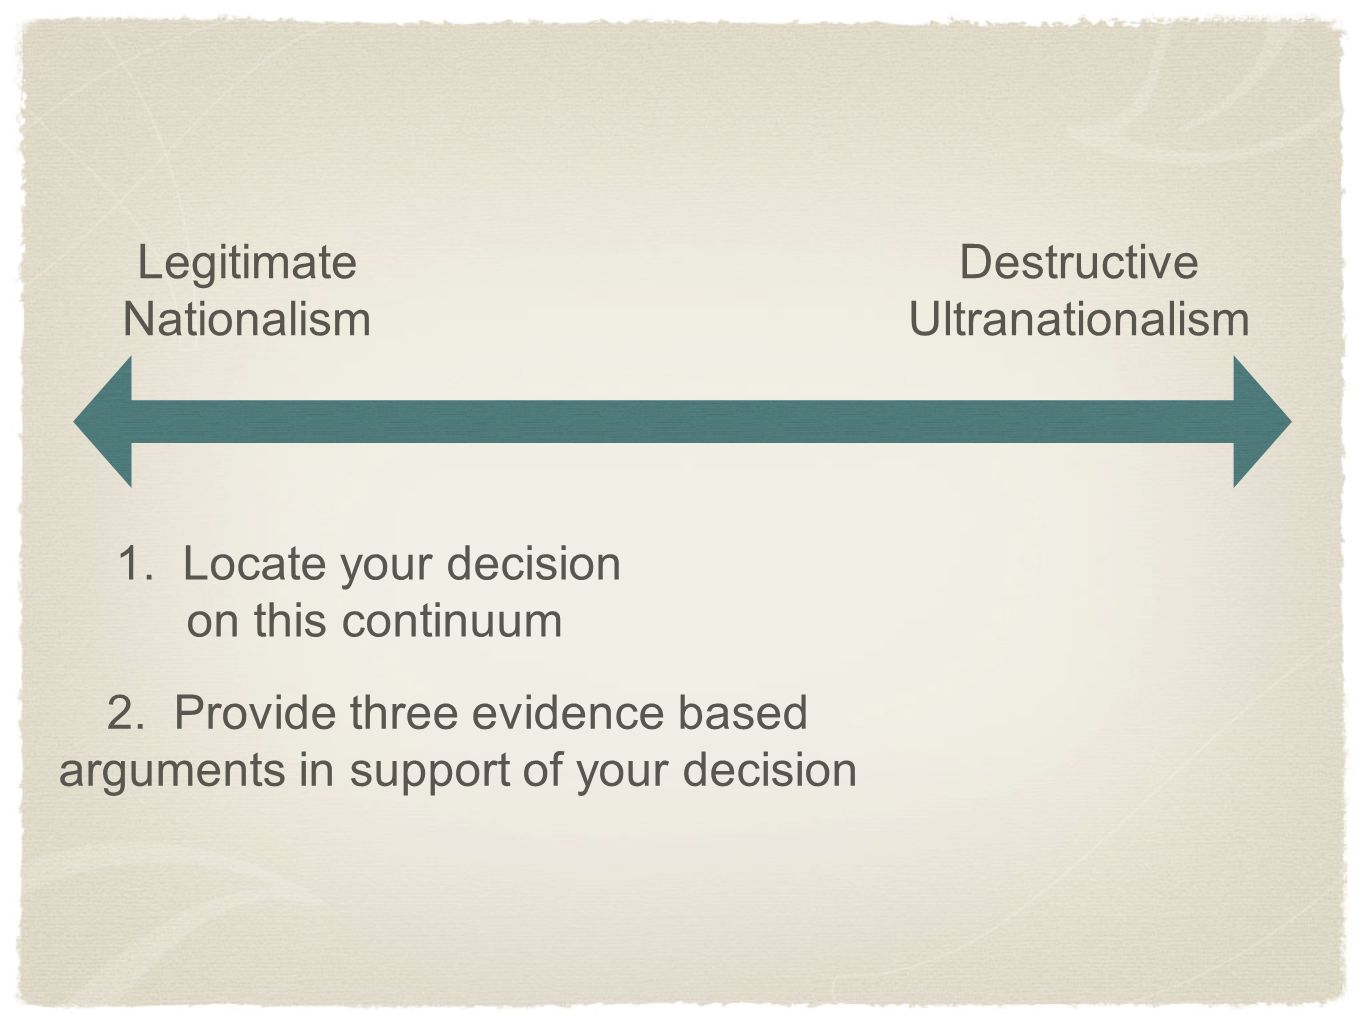 2. Provide three evidence based arguments in support of your decision